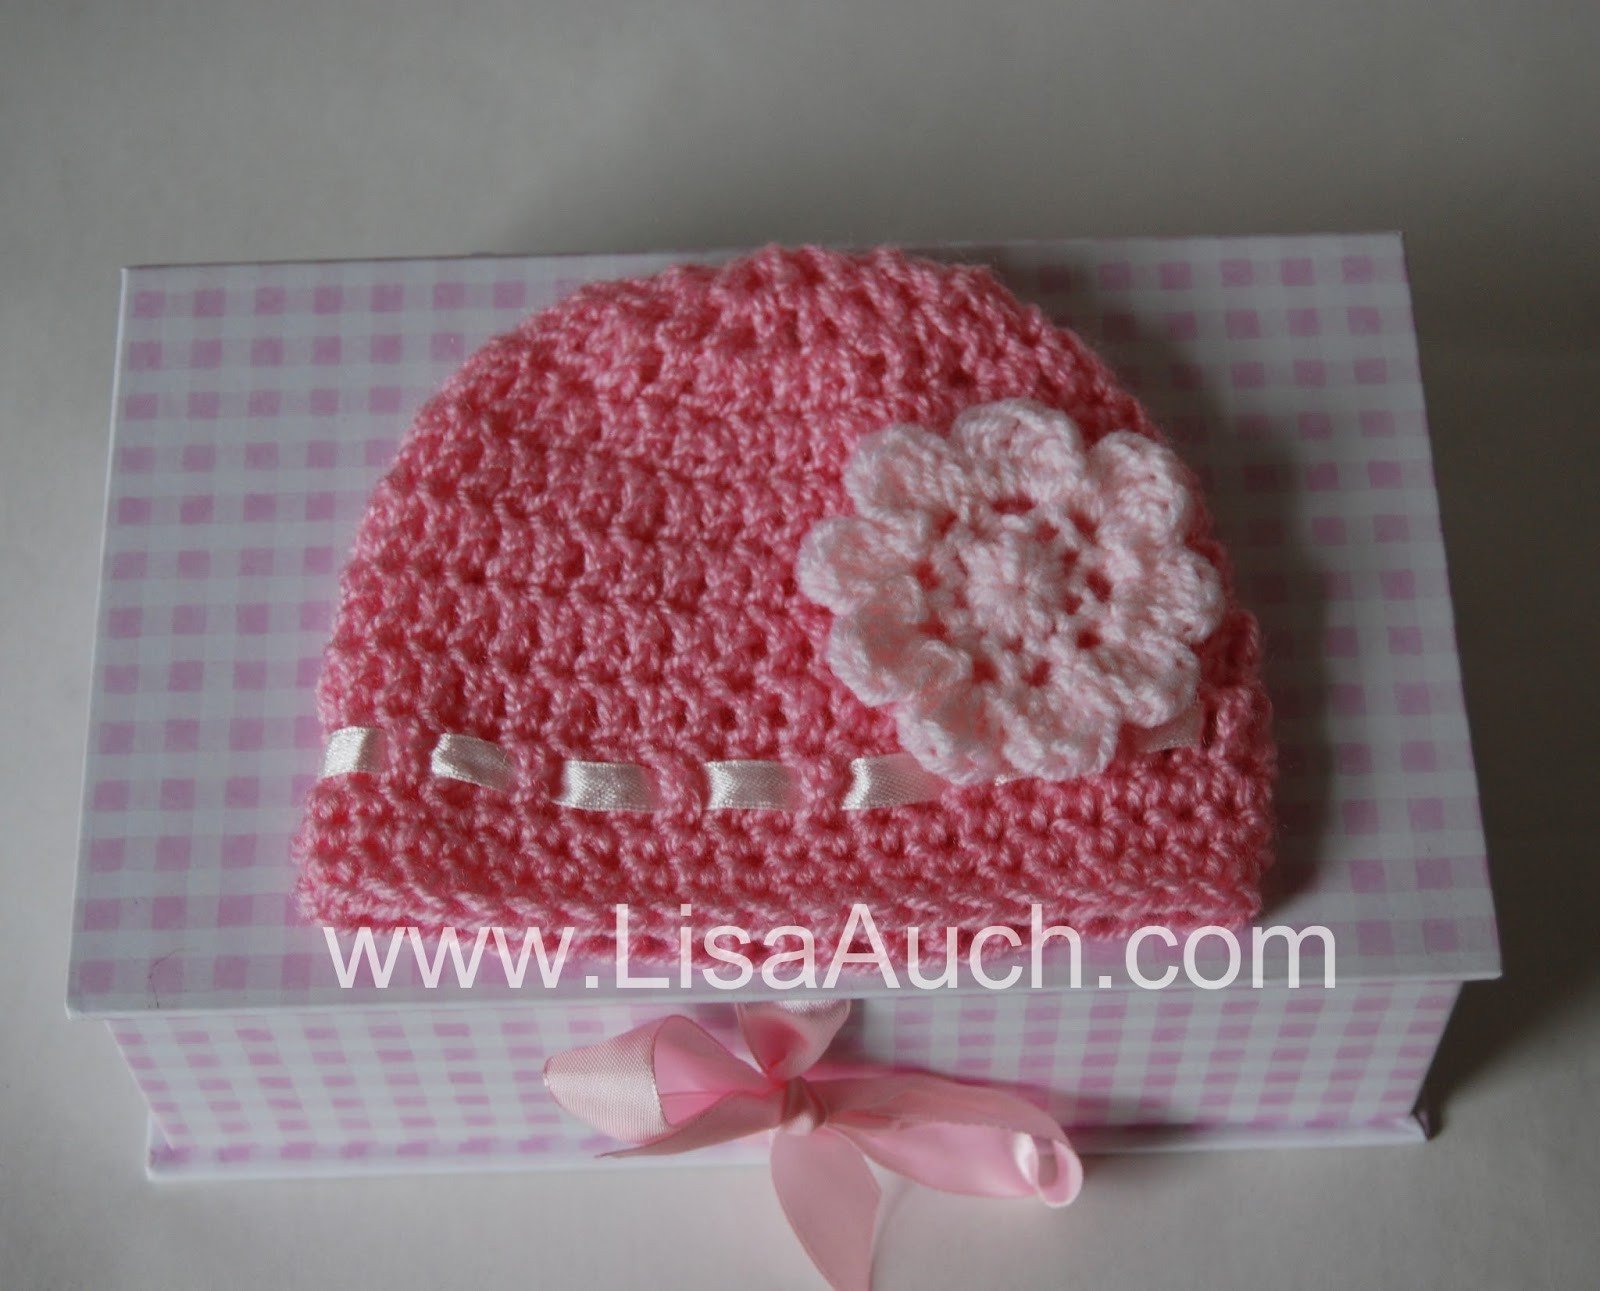 Crochet Baby Hat Pattern Instructions : BABY CLOTHES CROCHET FREE PATTERN Crochet Patterns